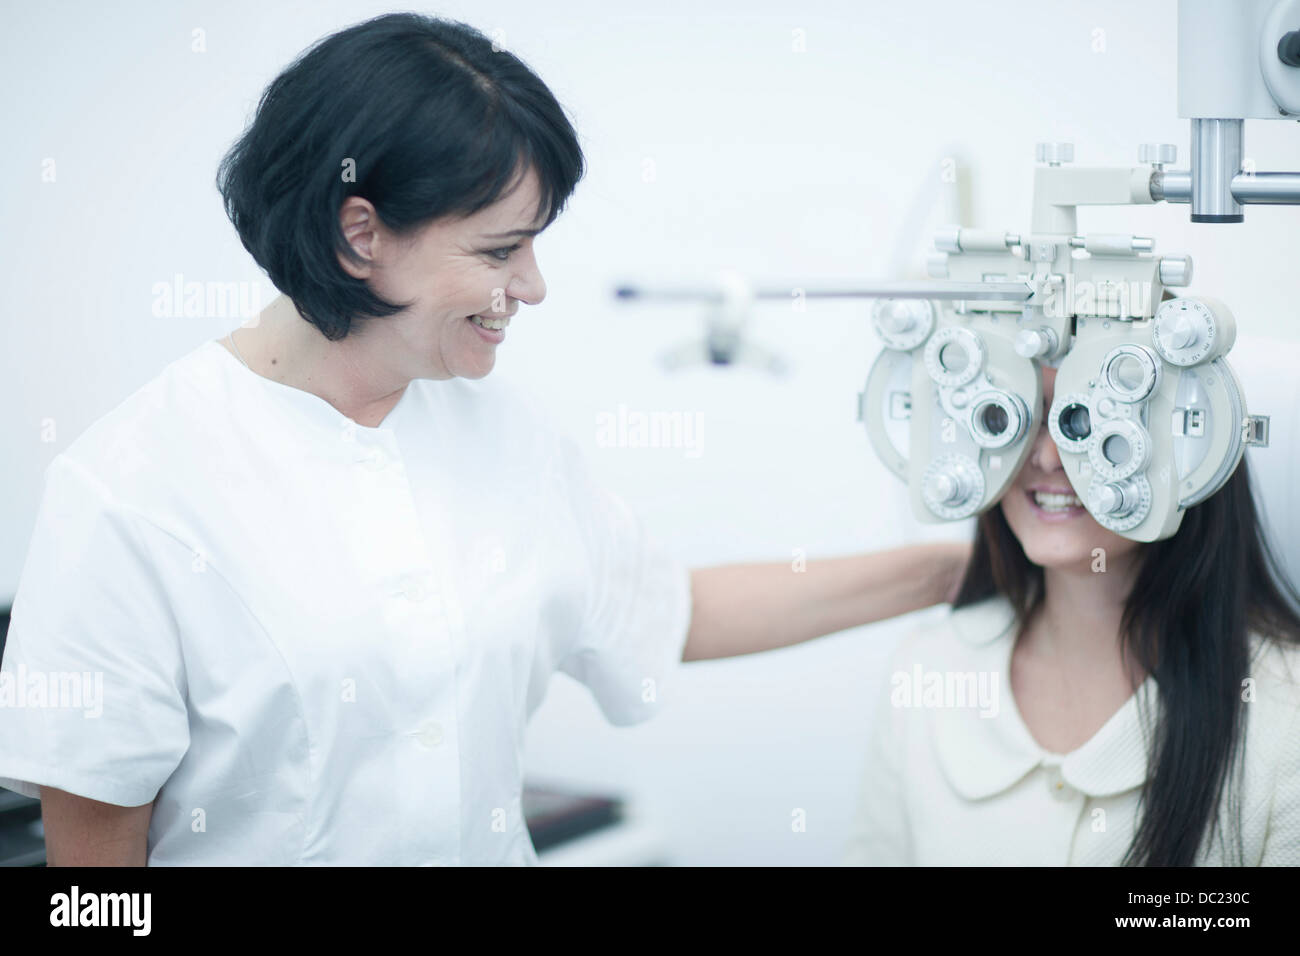 Young woman at opticians having eye test - Stock Image